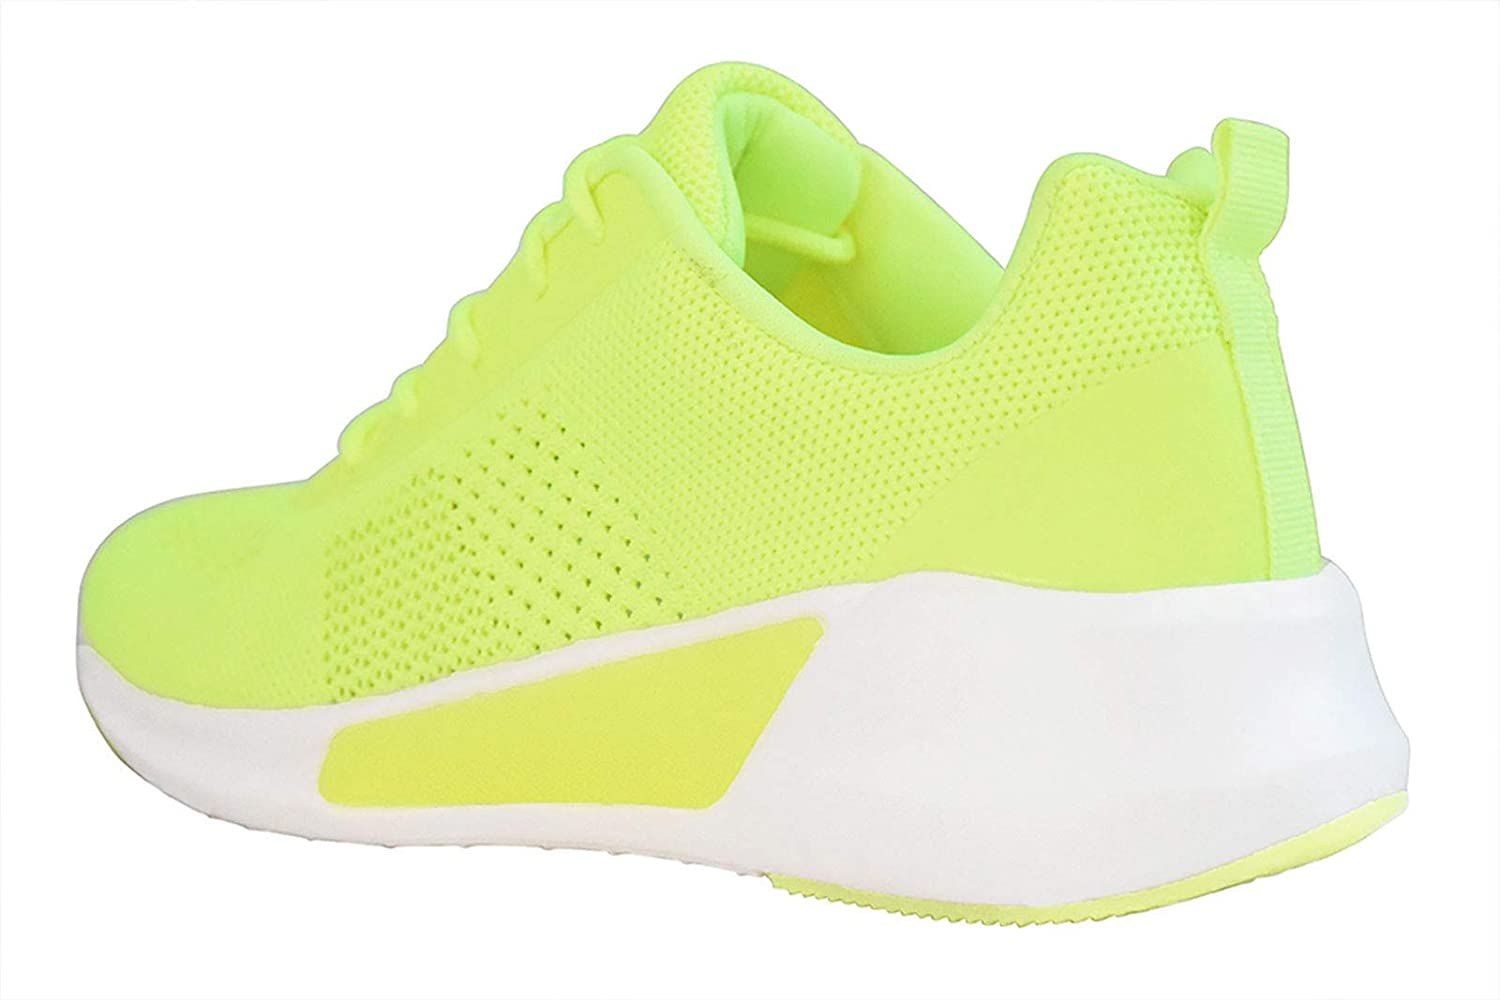 LUCKY-STEP Women Casual Lightweight Sneakers Mesh Breathable Athletic Running Shoes Non-Slip Fashion Shoes Lime